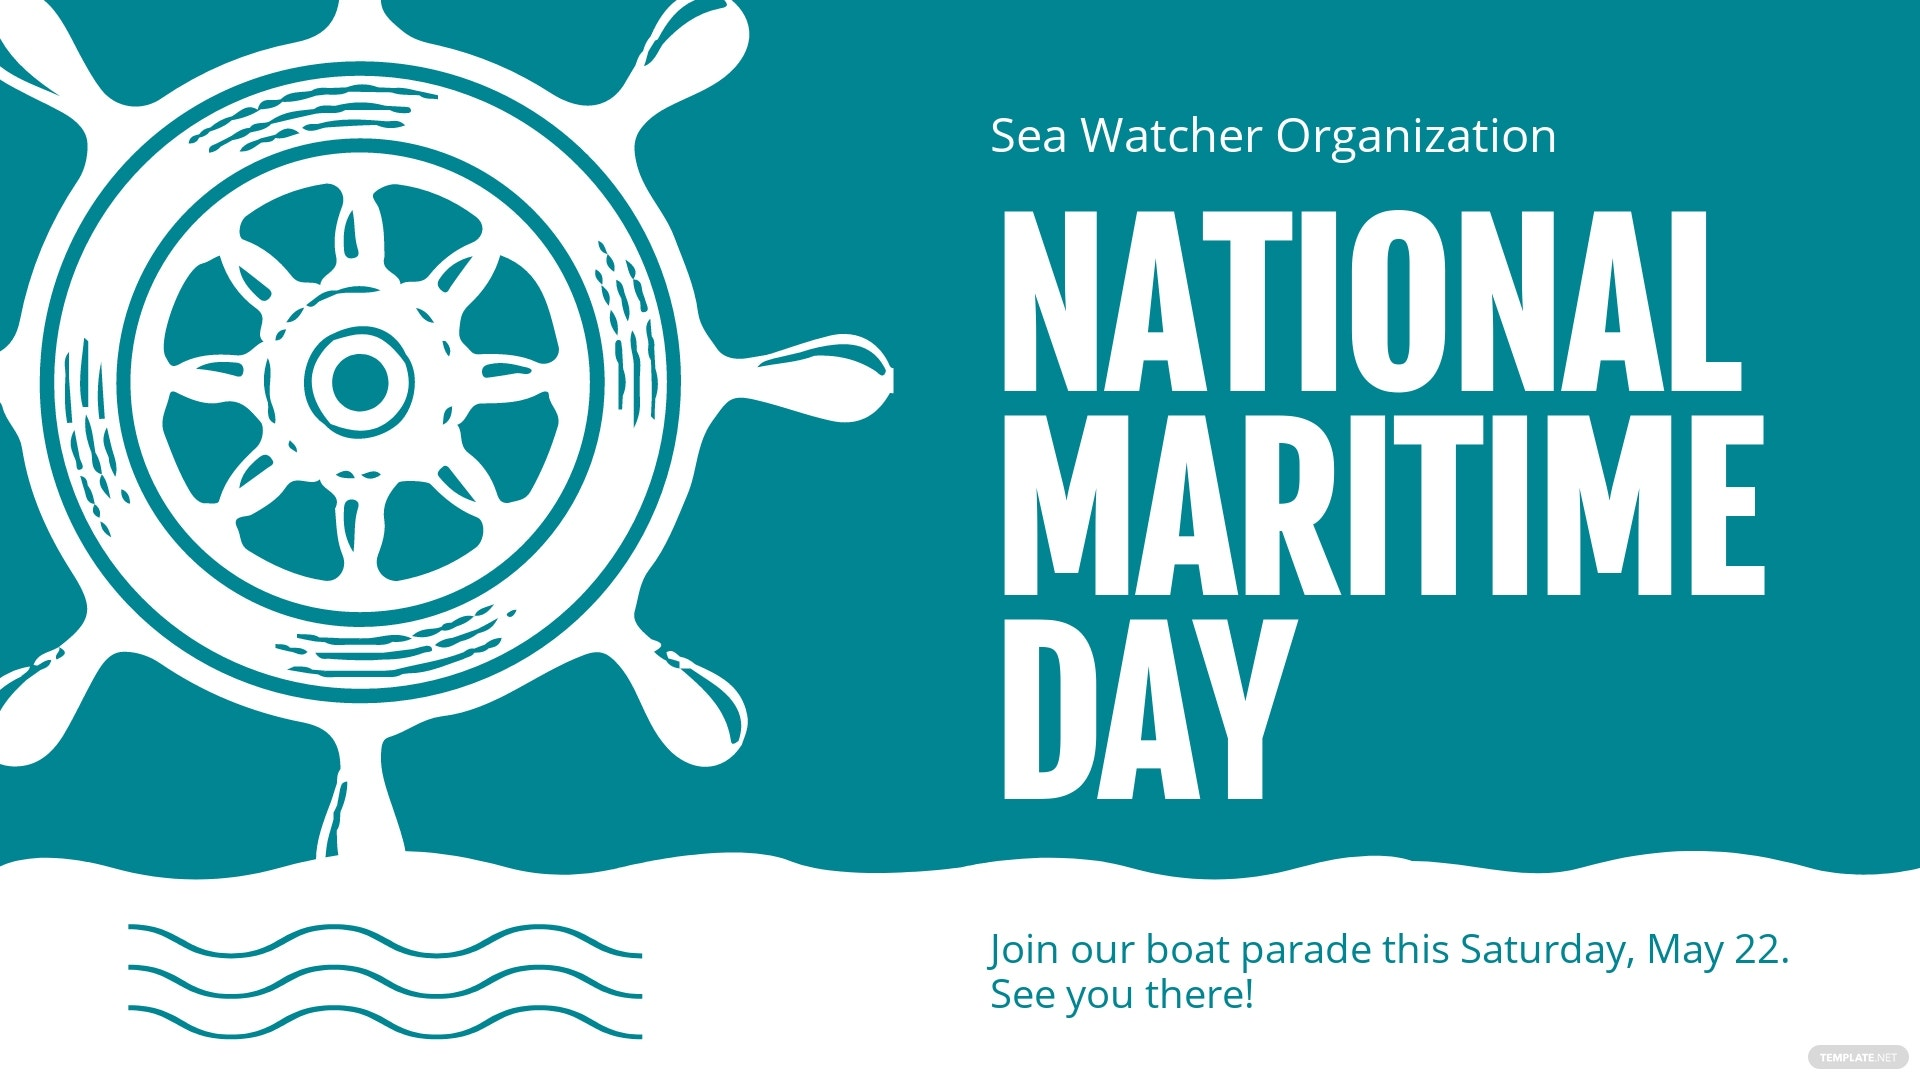 National Maritime Day Facebook Event Cover Template